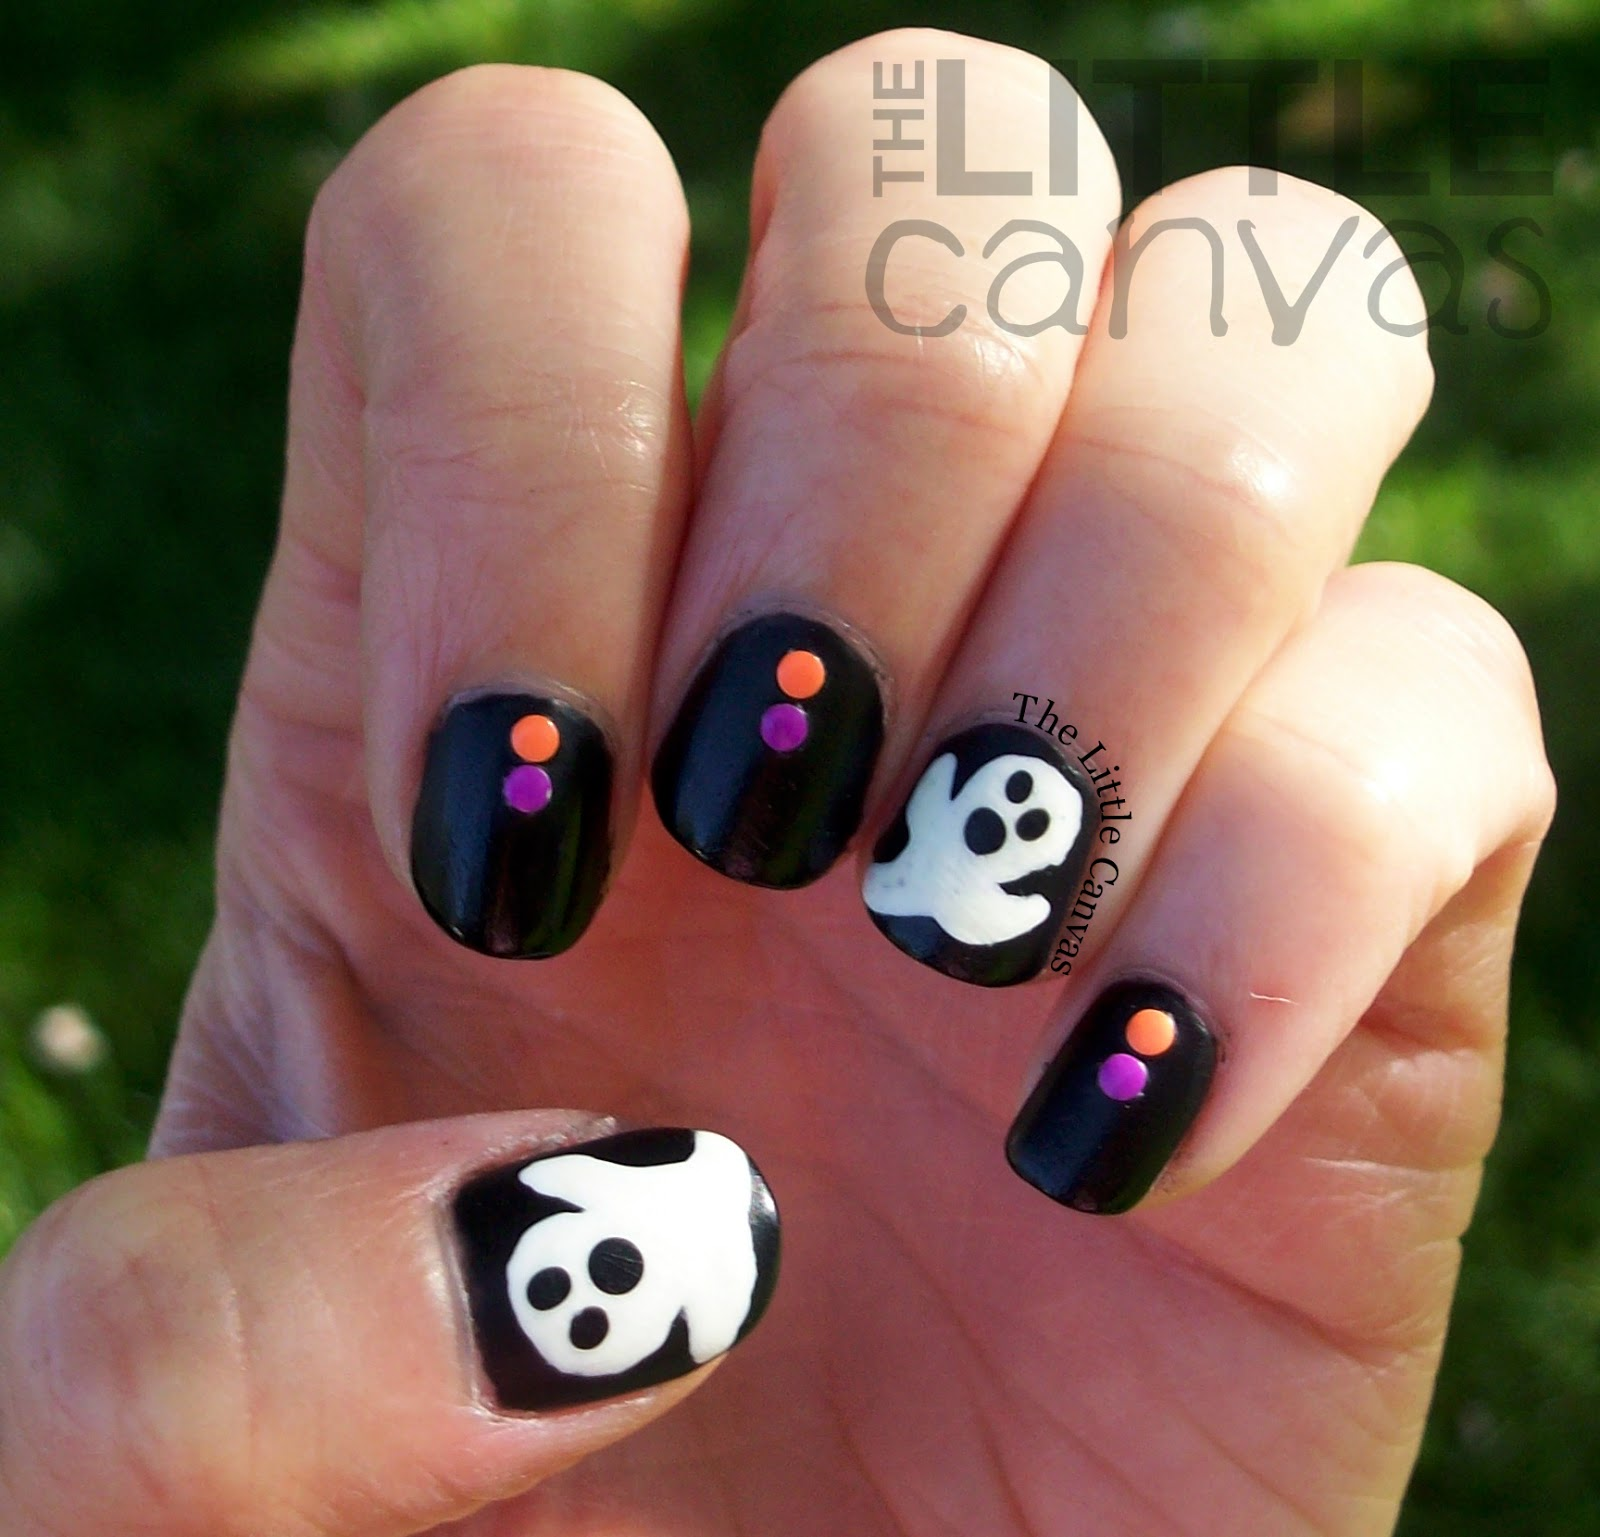 Ghost nail art my first stud manicure the little canvas ghost nail art my first stud manicure prinsesfo Gallery